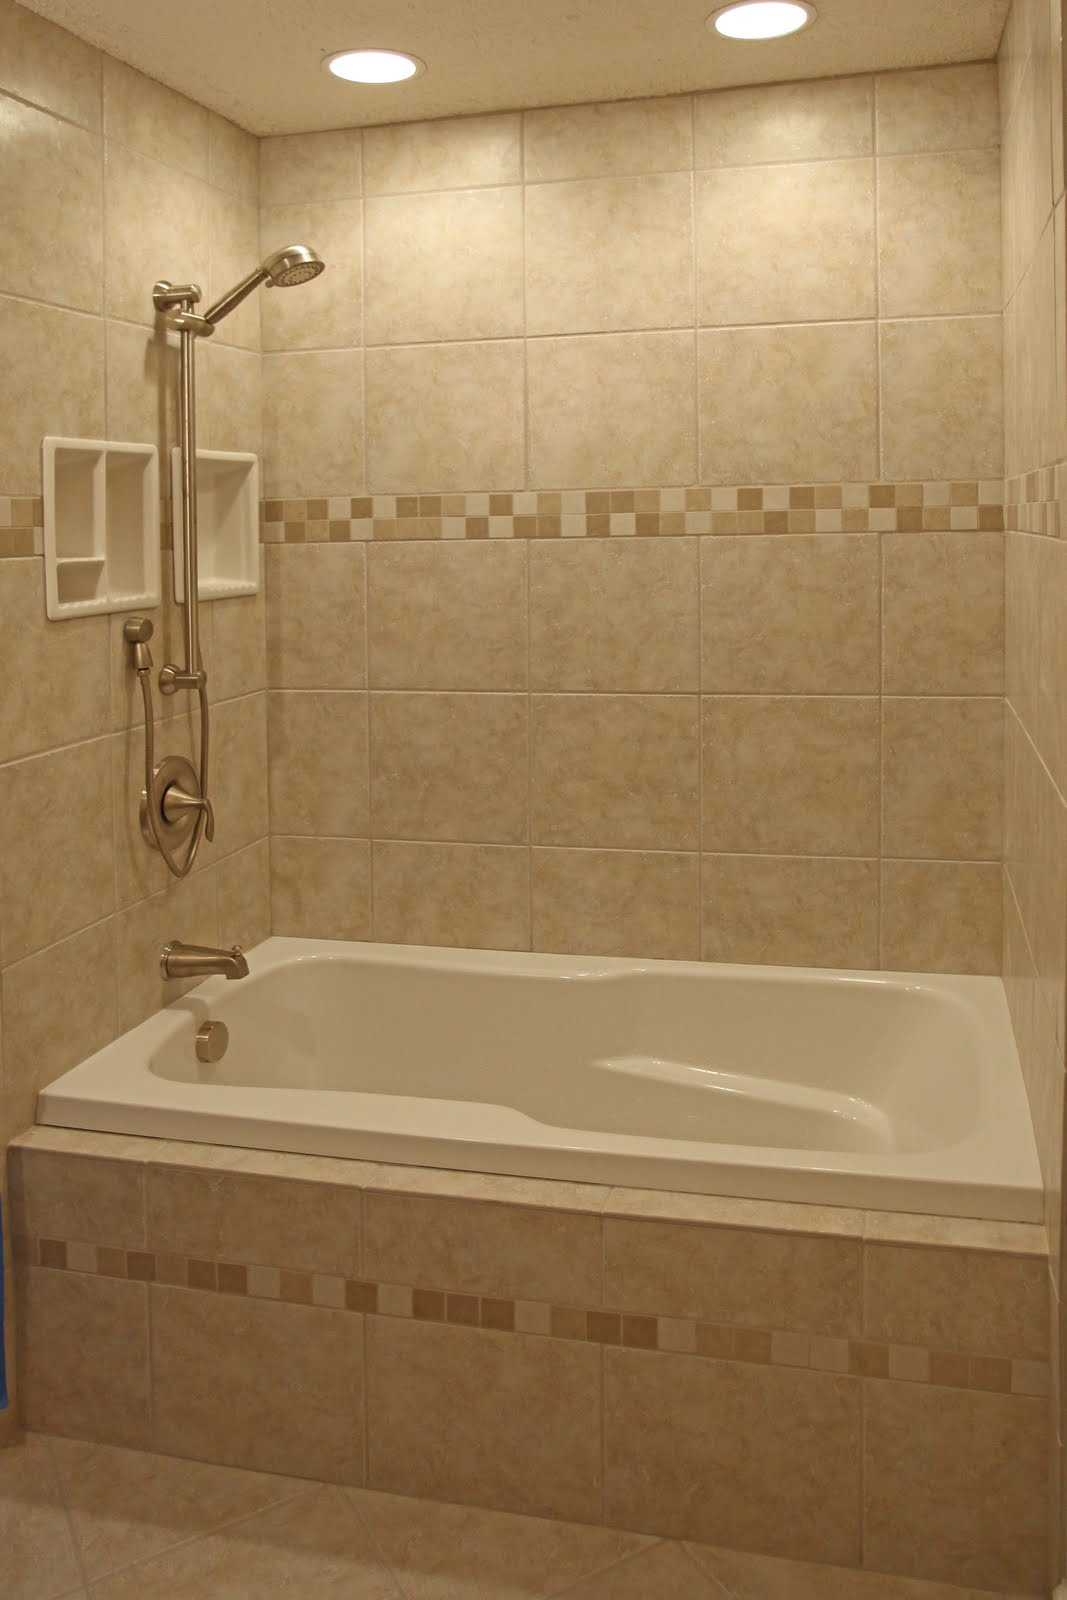 Bathroom remodeling design ideas tile shower niches november 2009 Best tile for shower walls